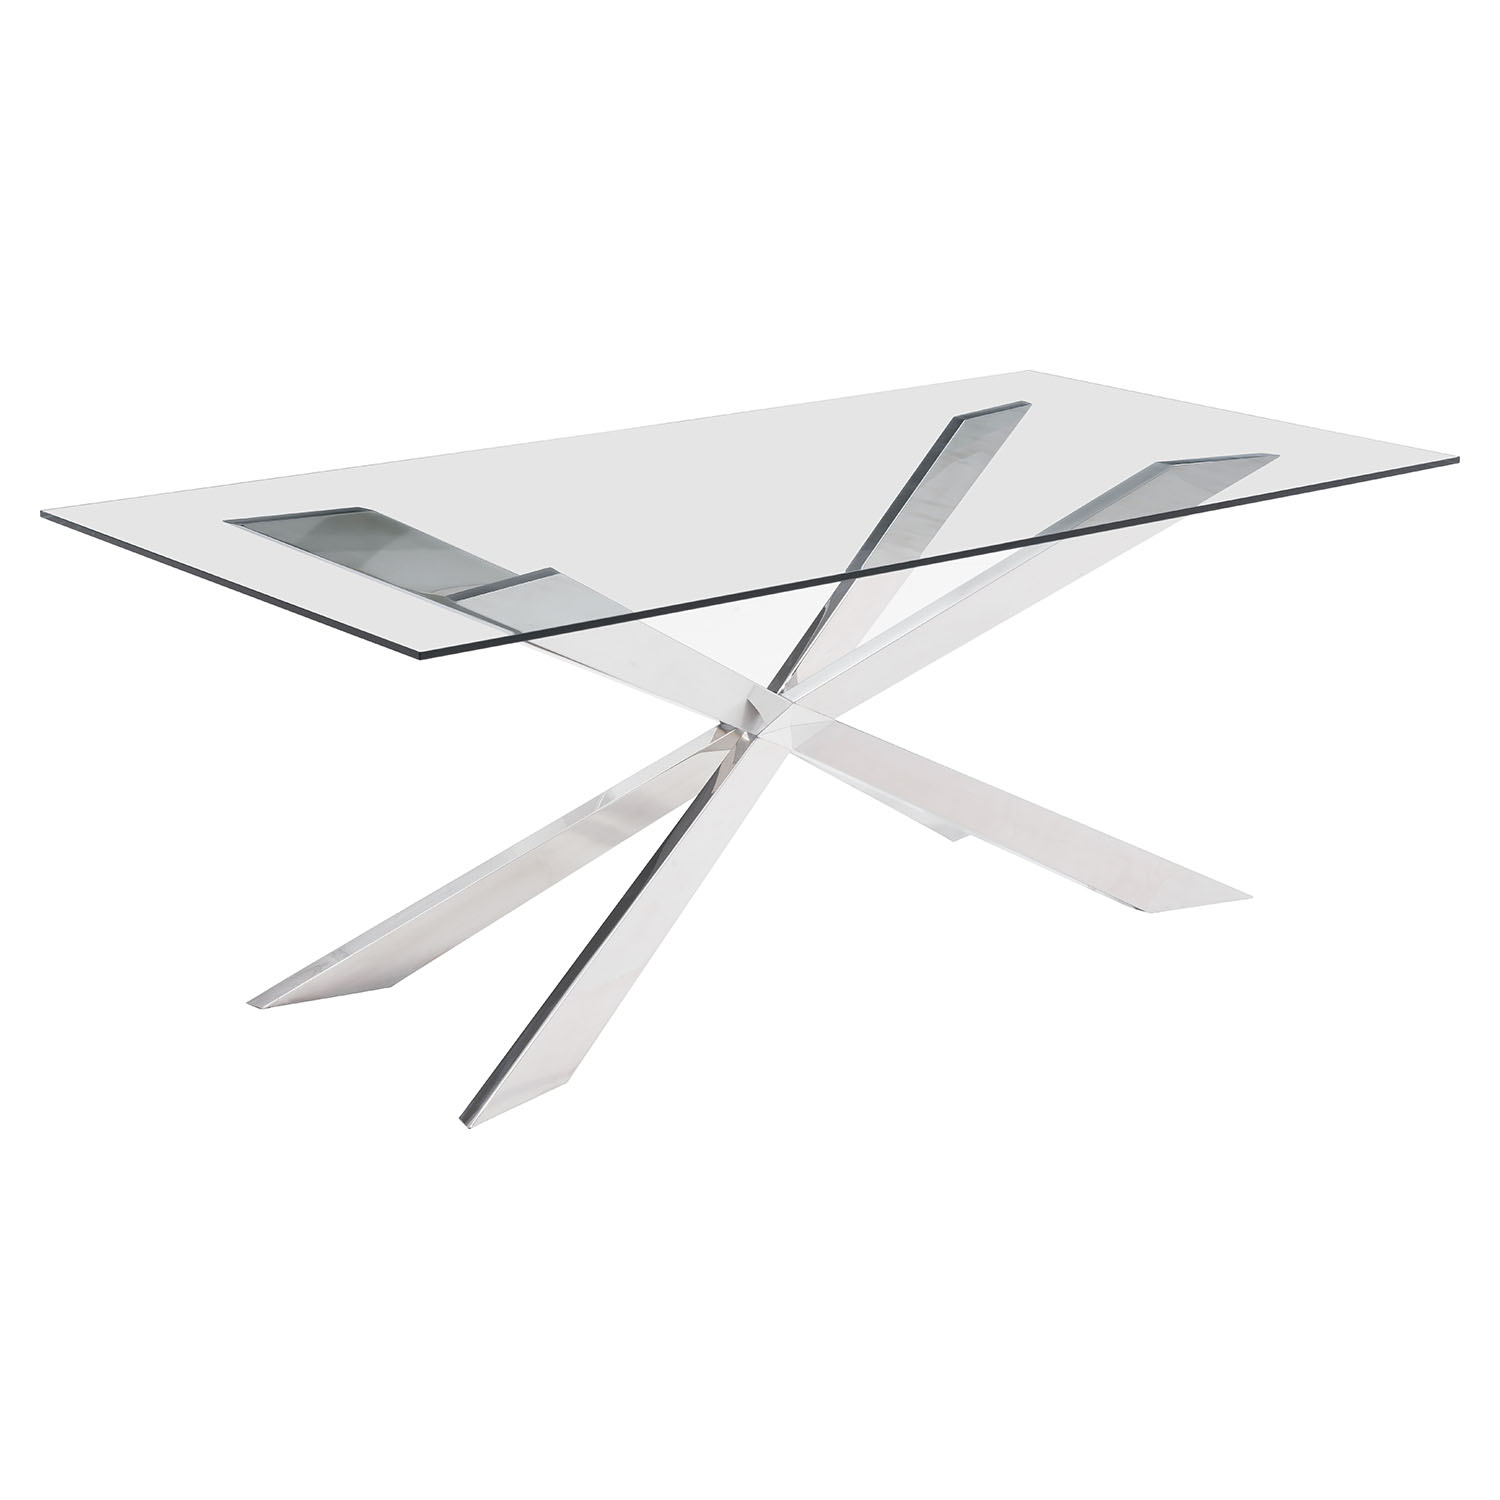 Rize Dining Table - Chrome